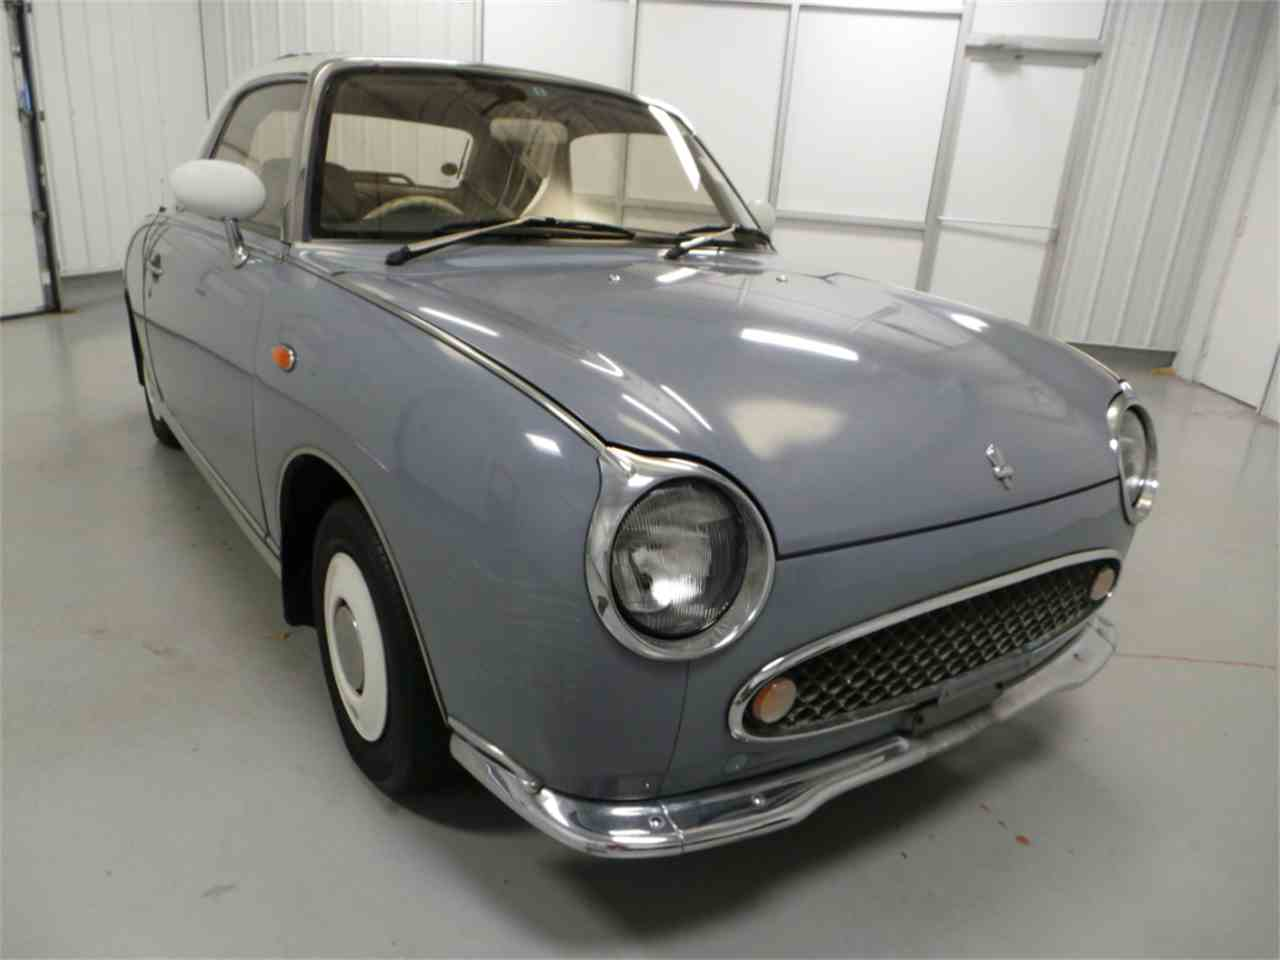 1991 Nissan Figaro for Sale - CC-913892